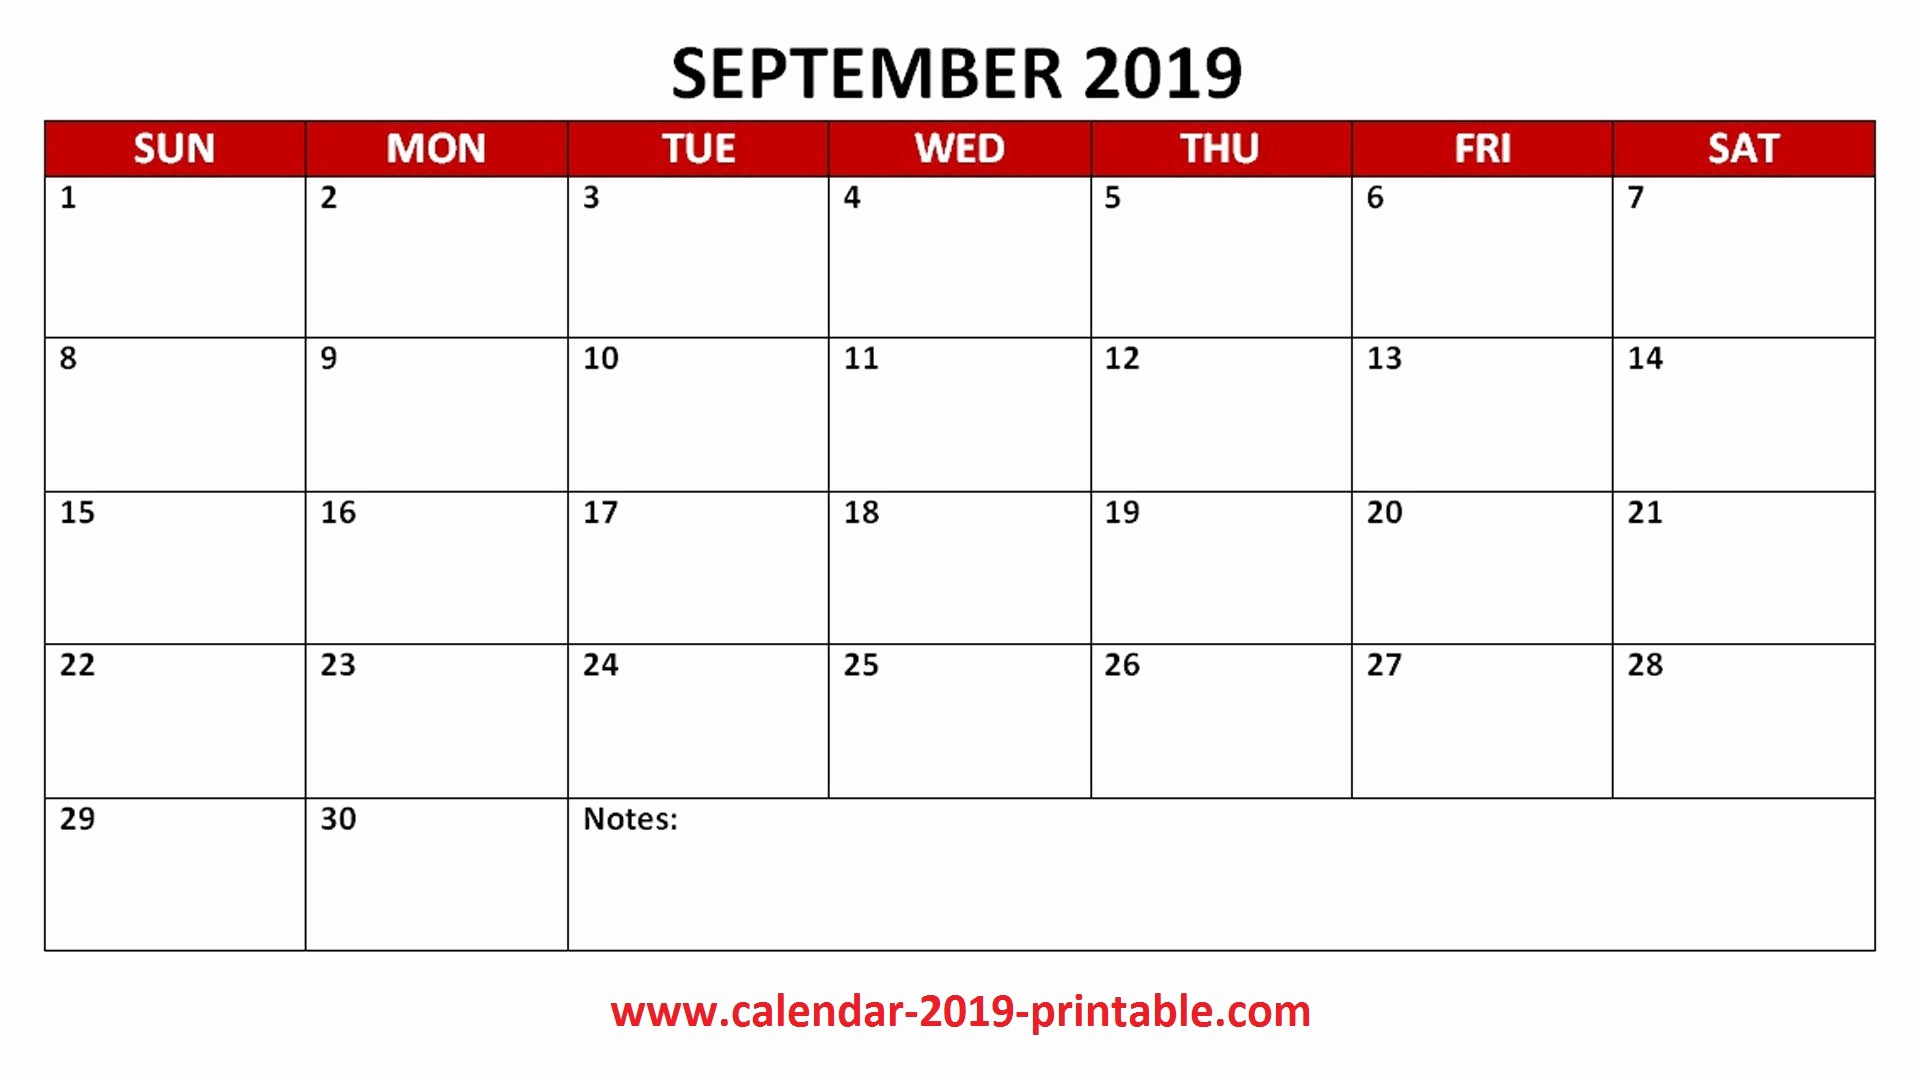 2019 Printable Calendar by Month Luxury September 2019 Calendar Printable Templates